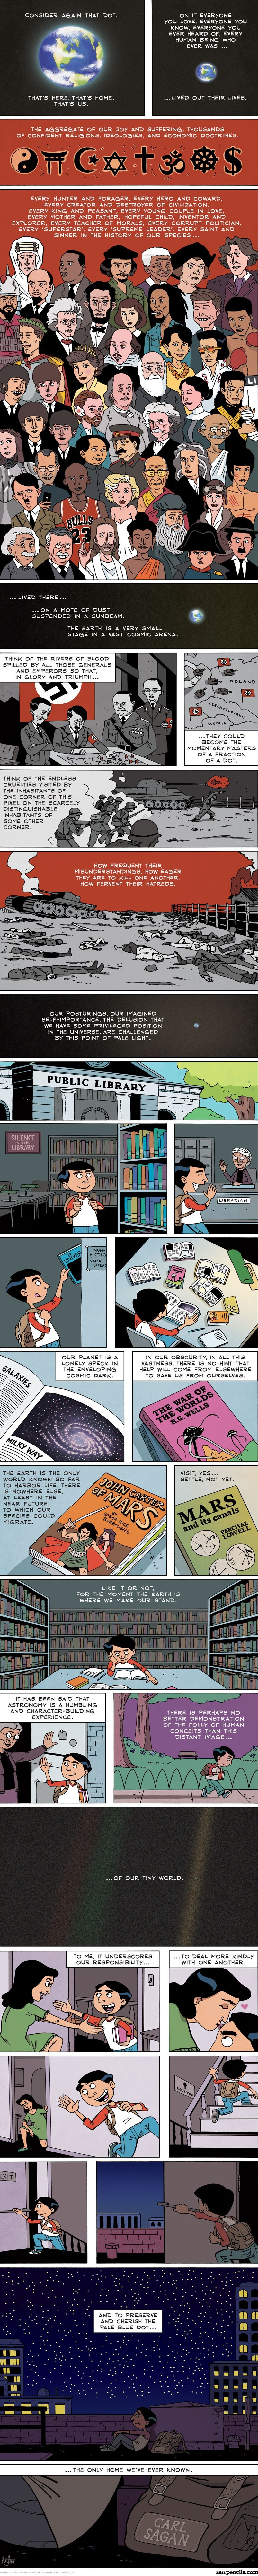 pale-blue-dot-carl-sagan-comic-strip